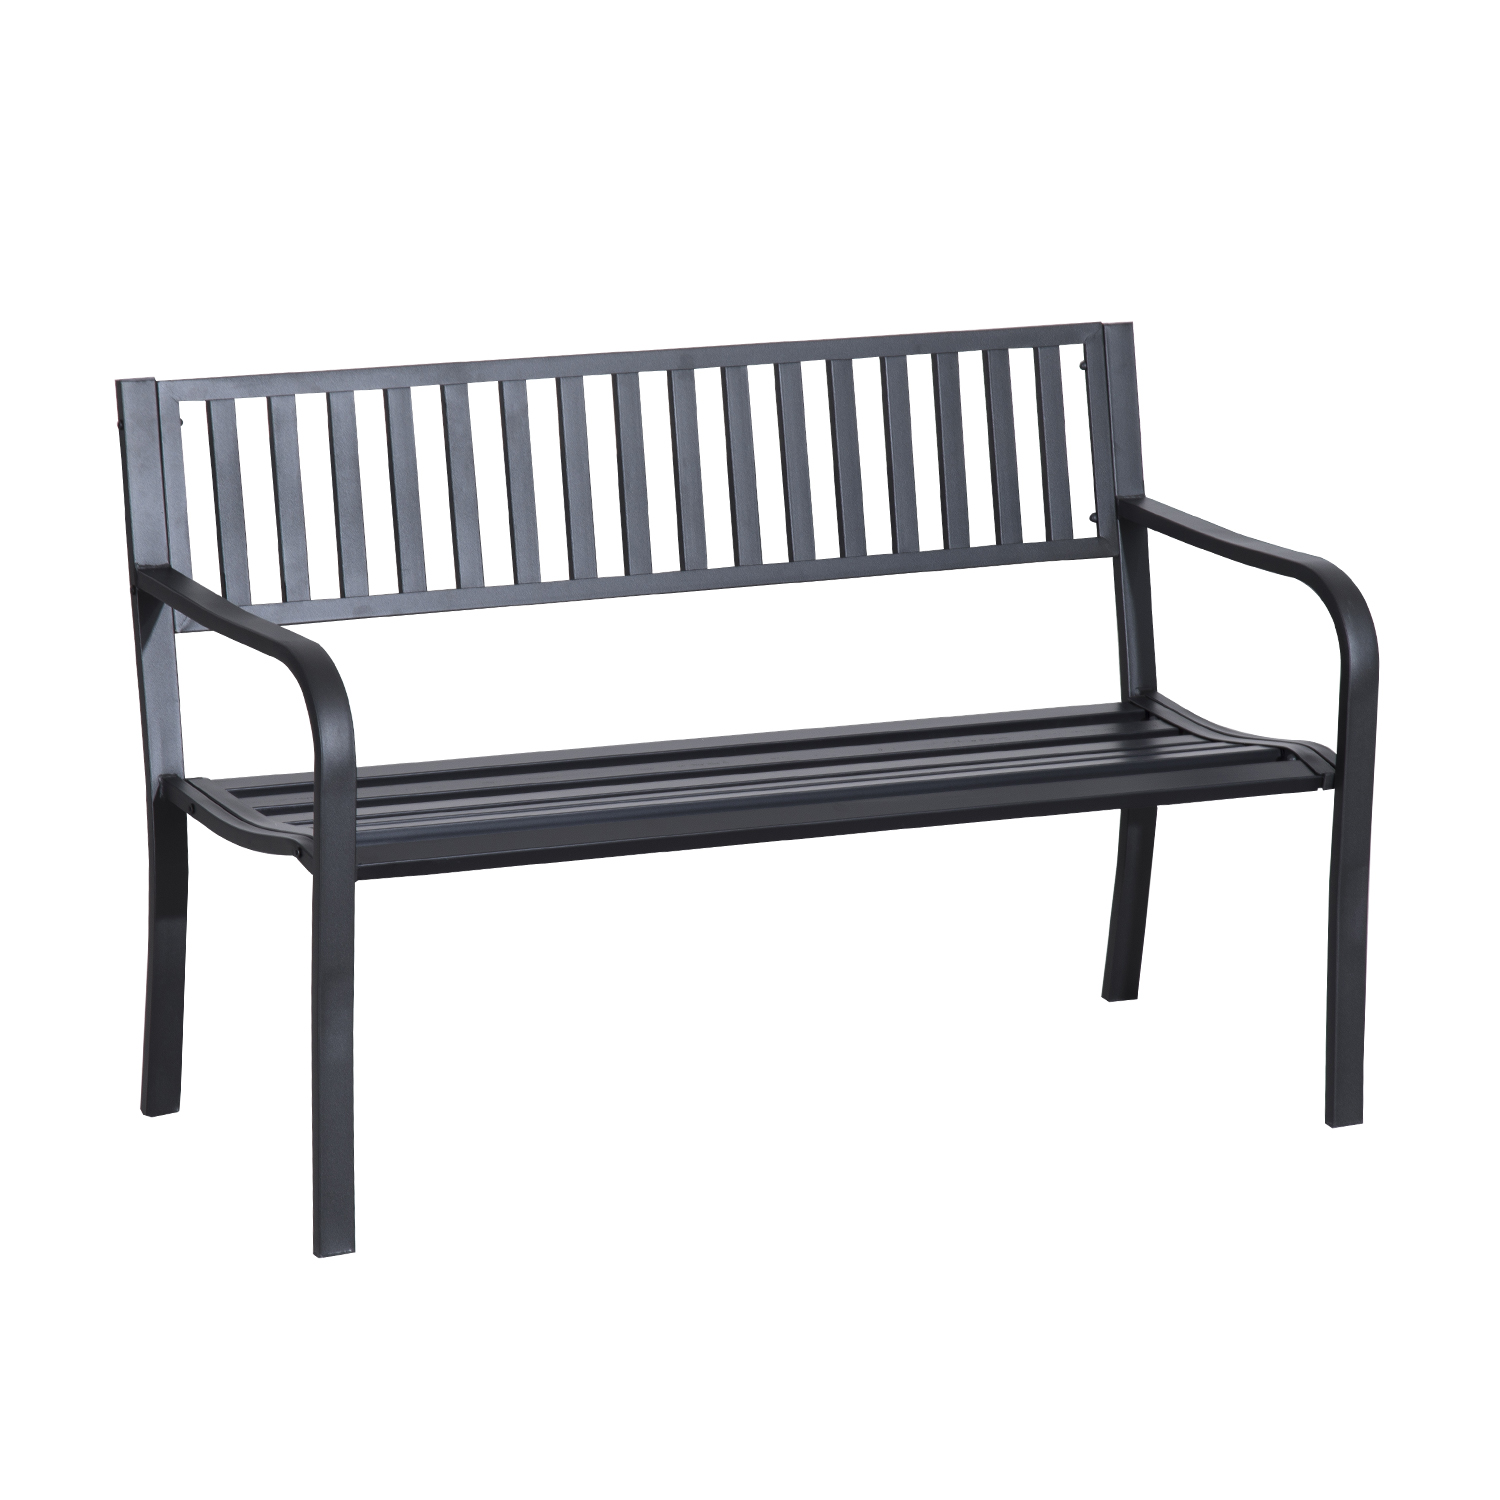 Outsunny 50 Slatted Steel Decorative Patio Garden Bench